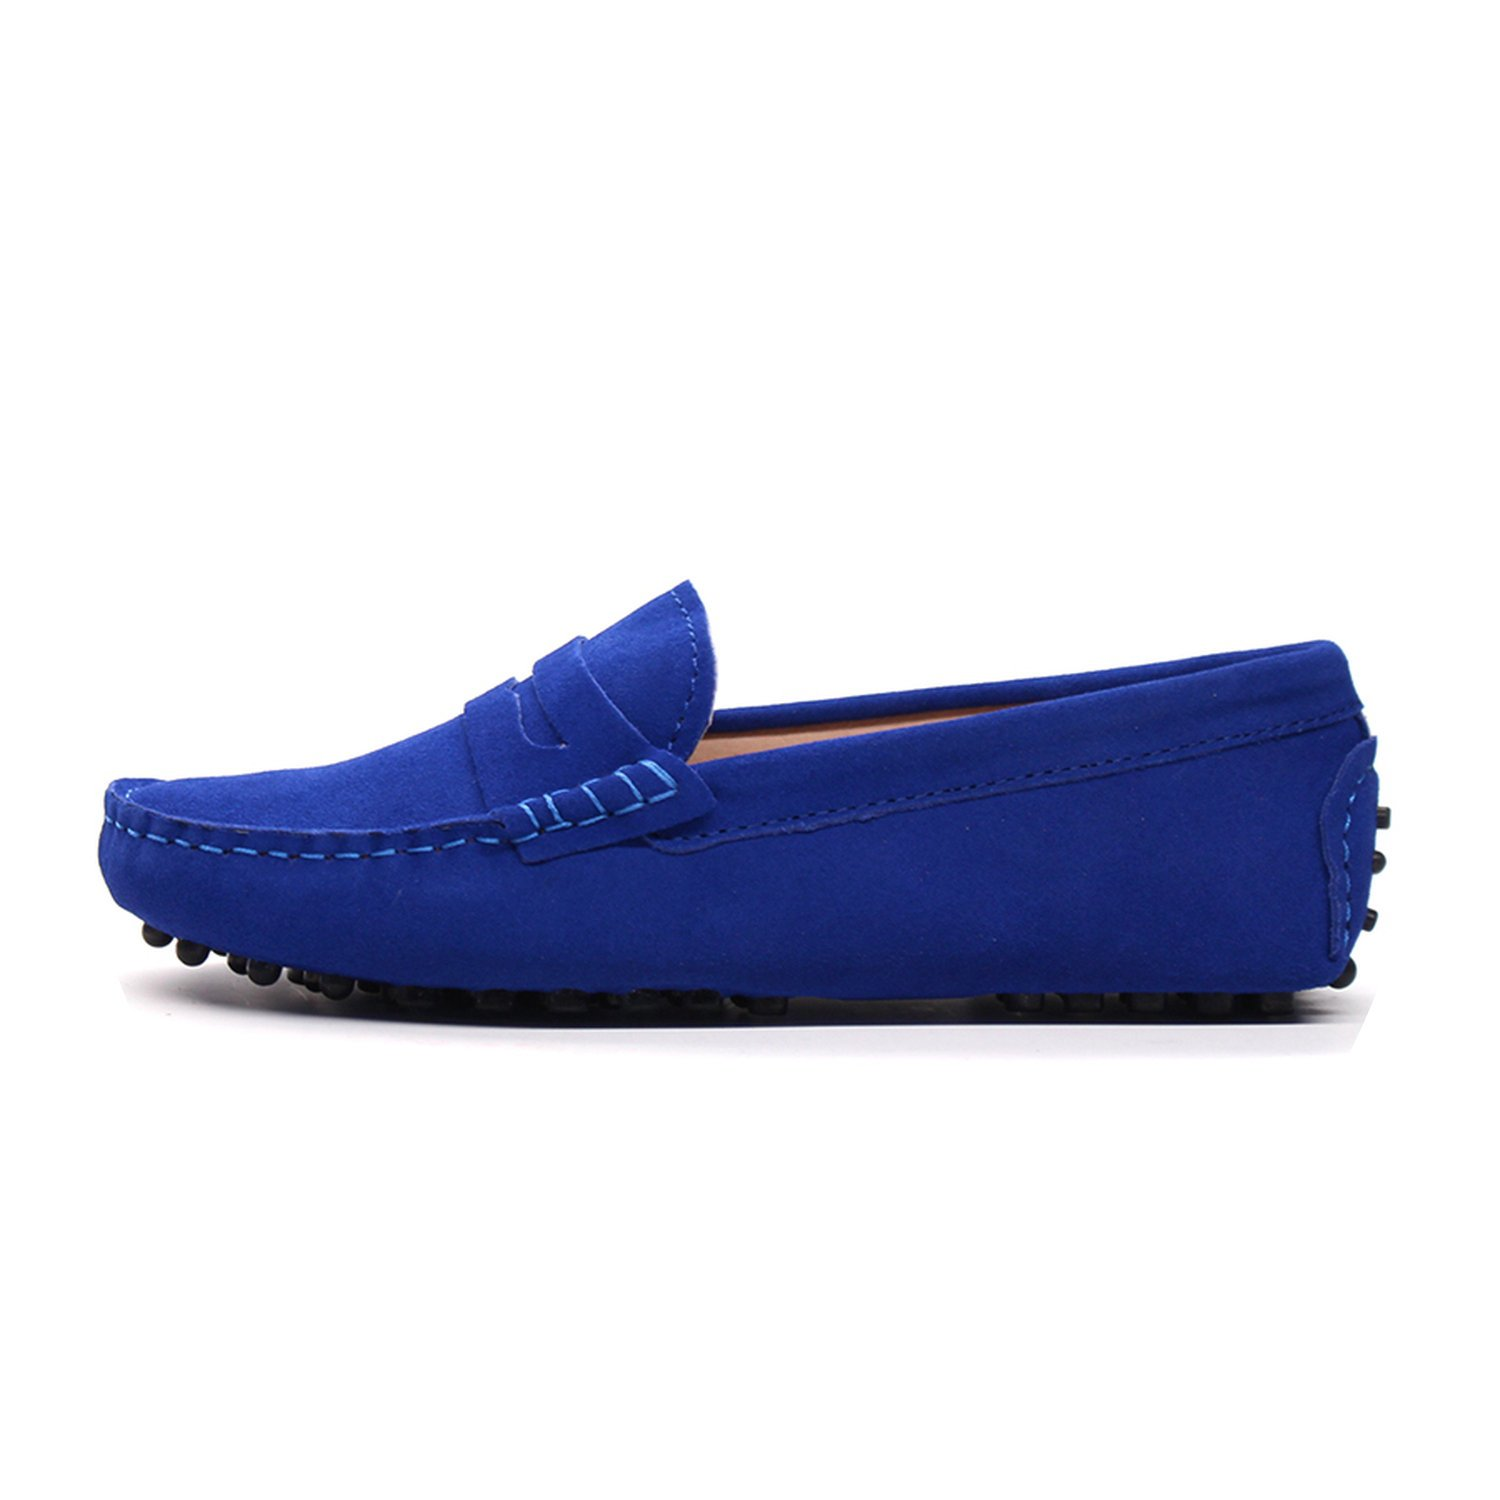 2018 New Women Flats Genuine Leather Driving Shoes Summer Women Casual Shoes B07DV56LSV 7 B(M) US|Blue